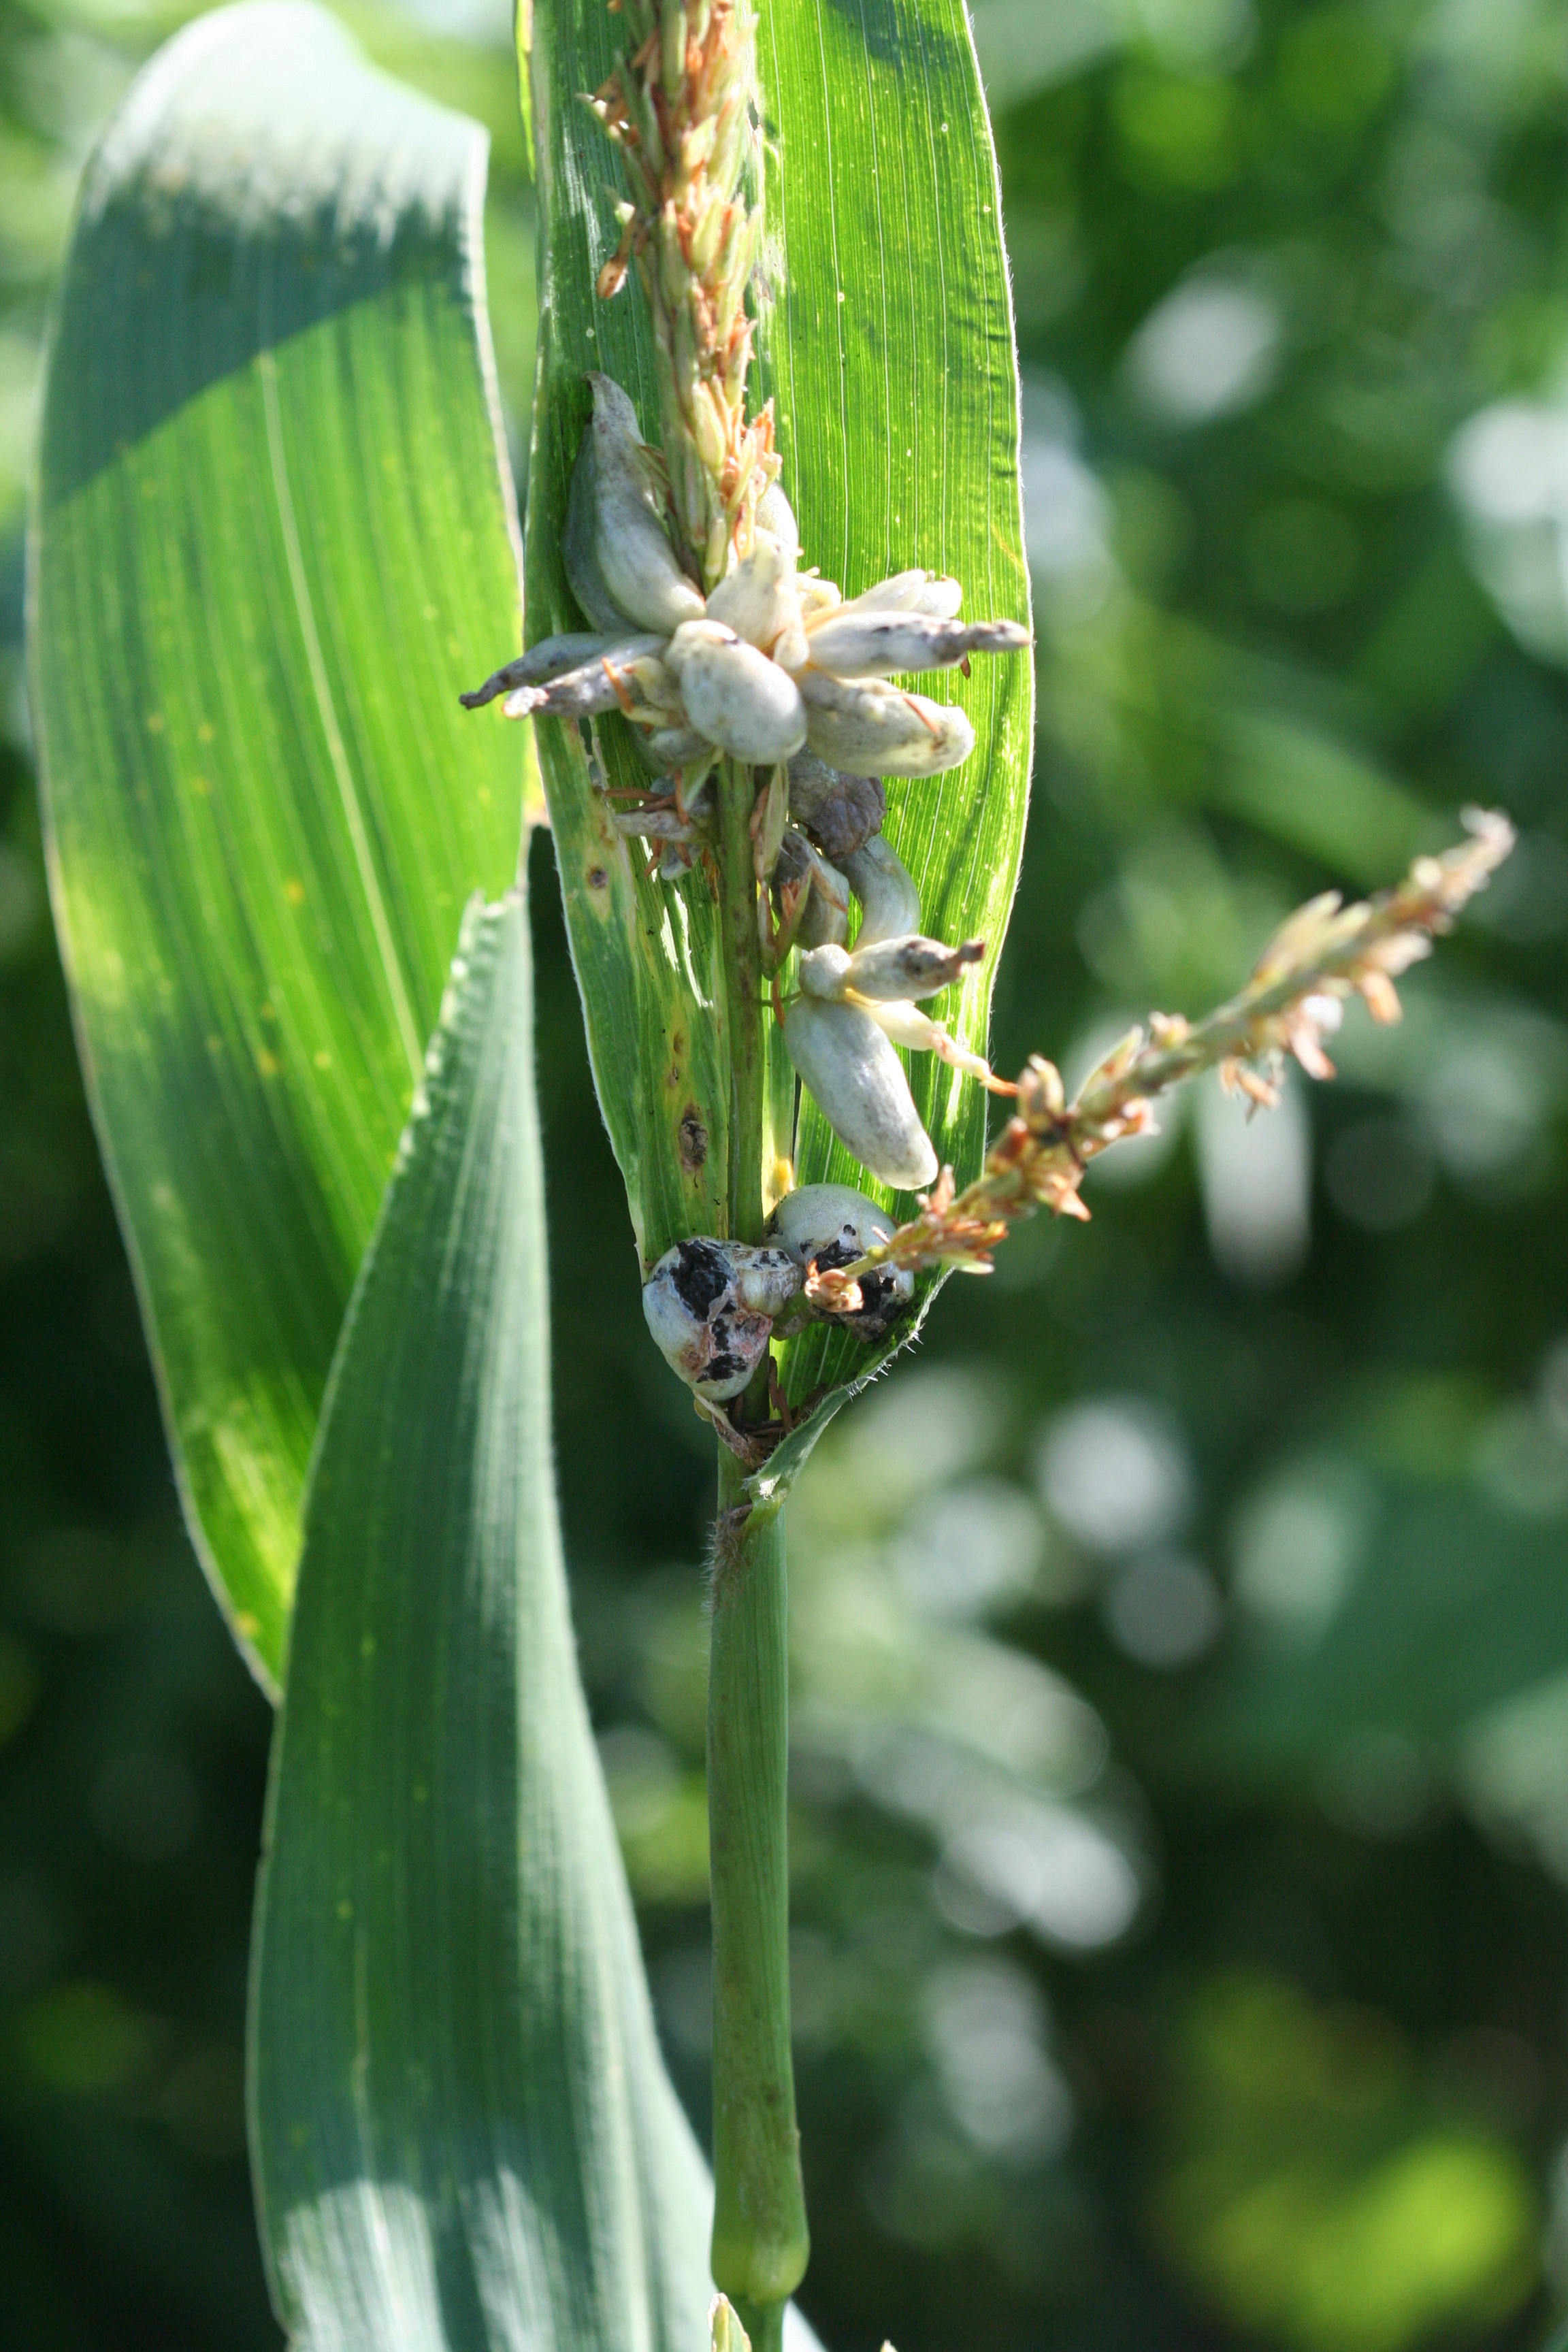 Common smut galls forming on the tassel.